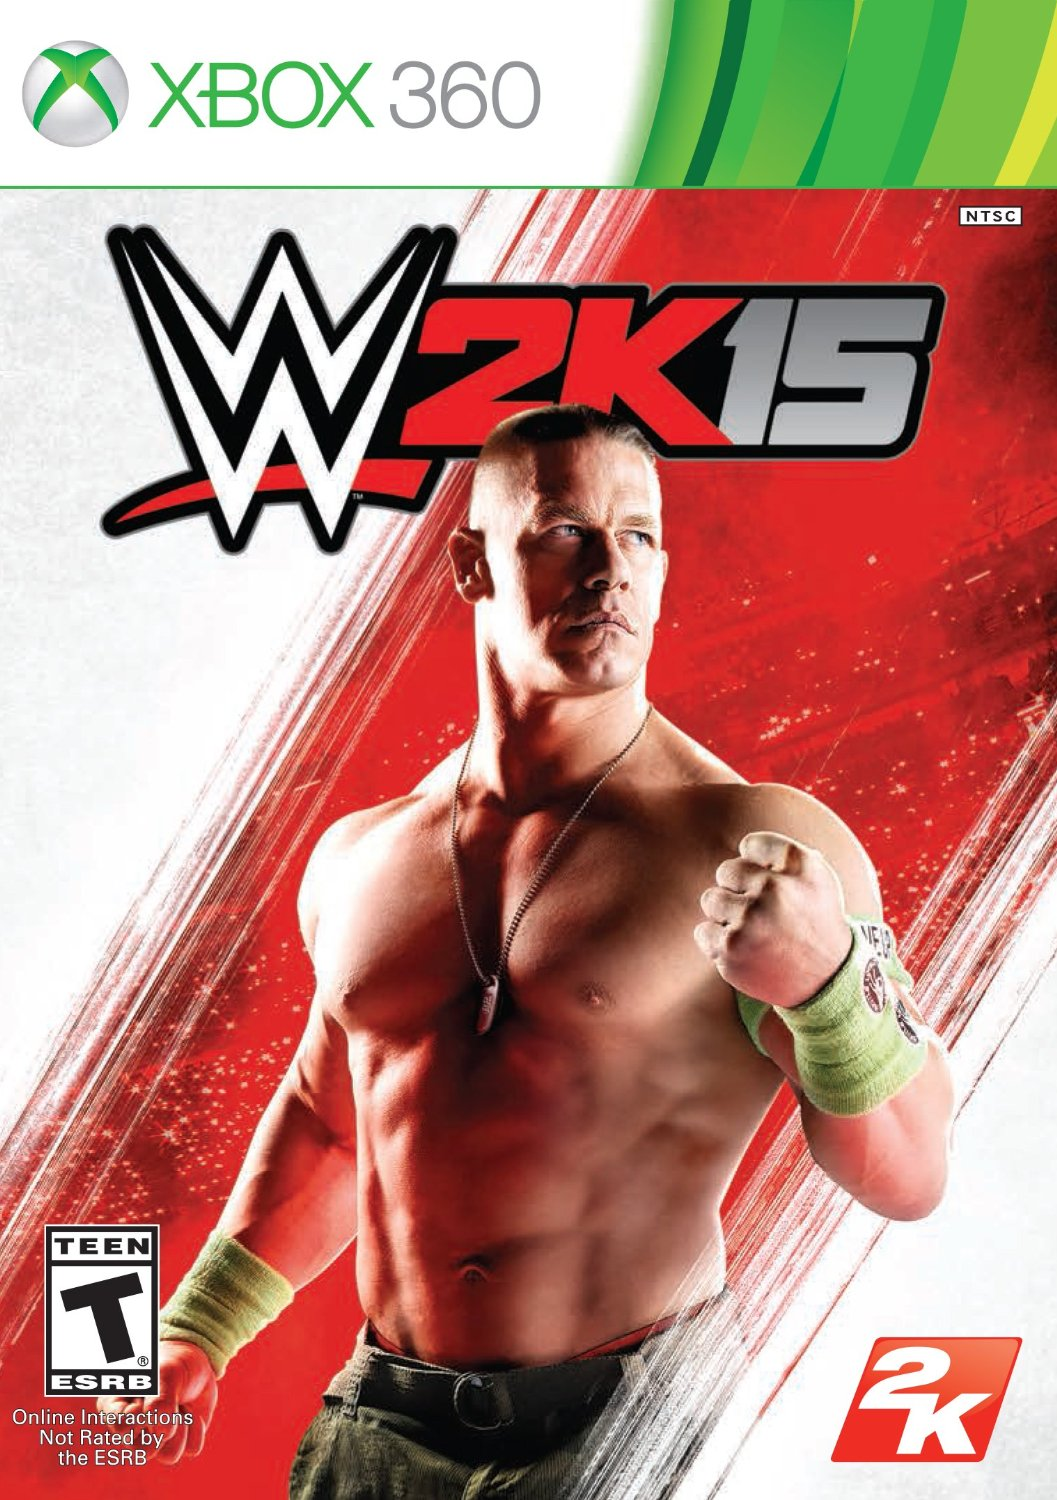 https://rozup.ir/up/narsis3/Pictures/WWE-2K15-xbox360-cover-large.jpg